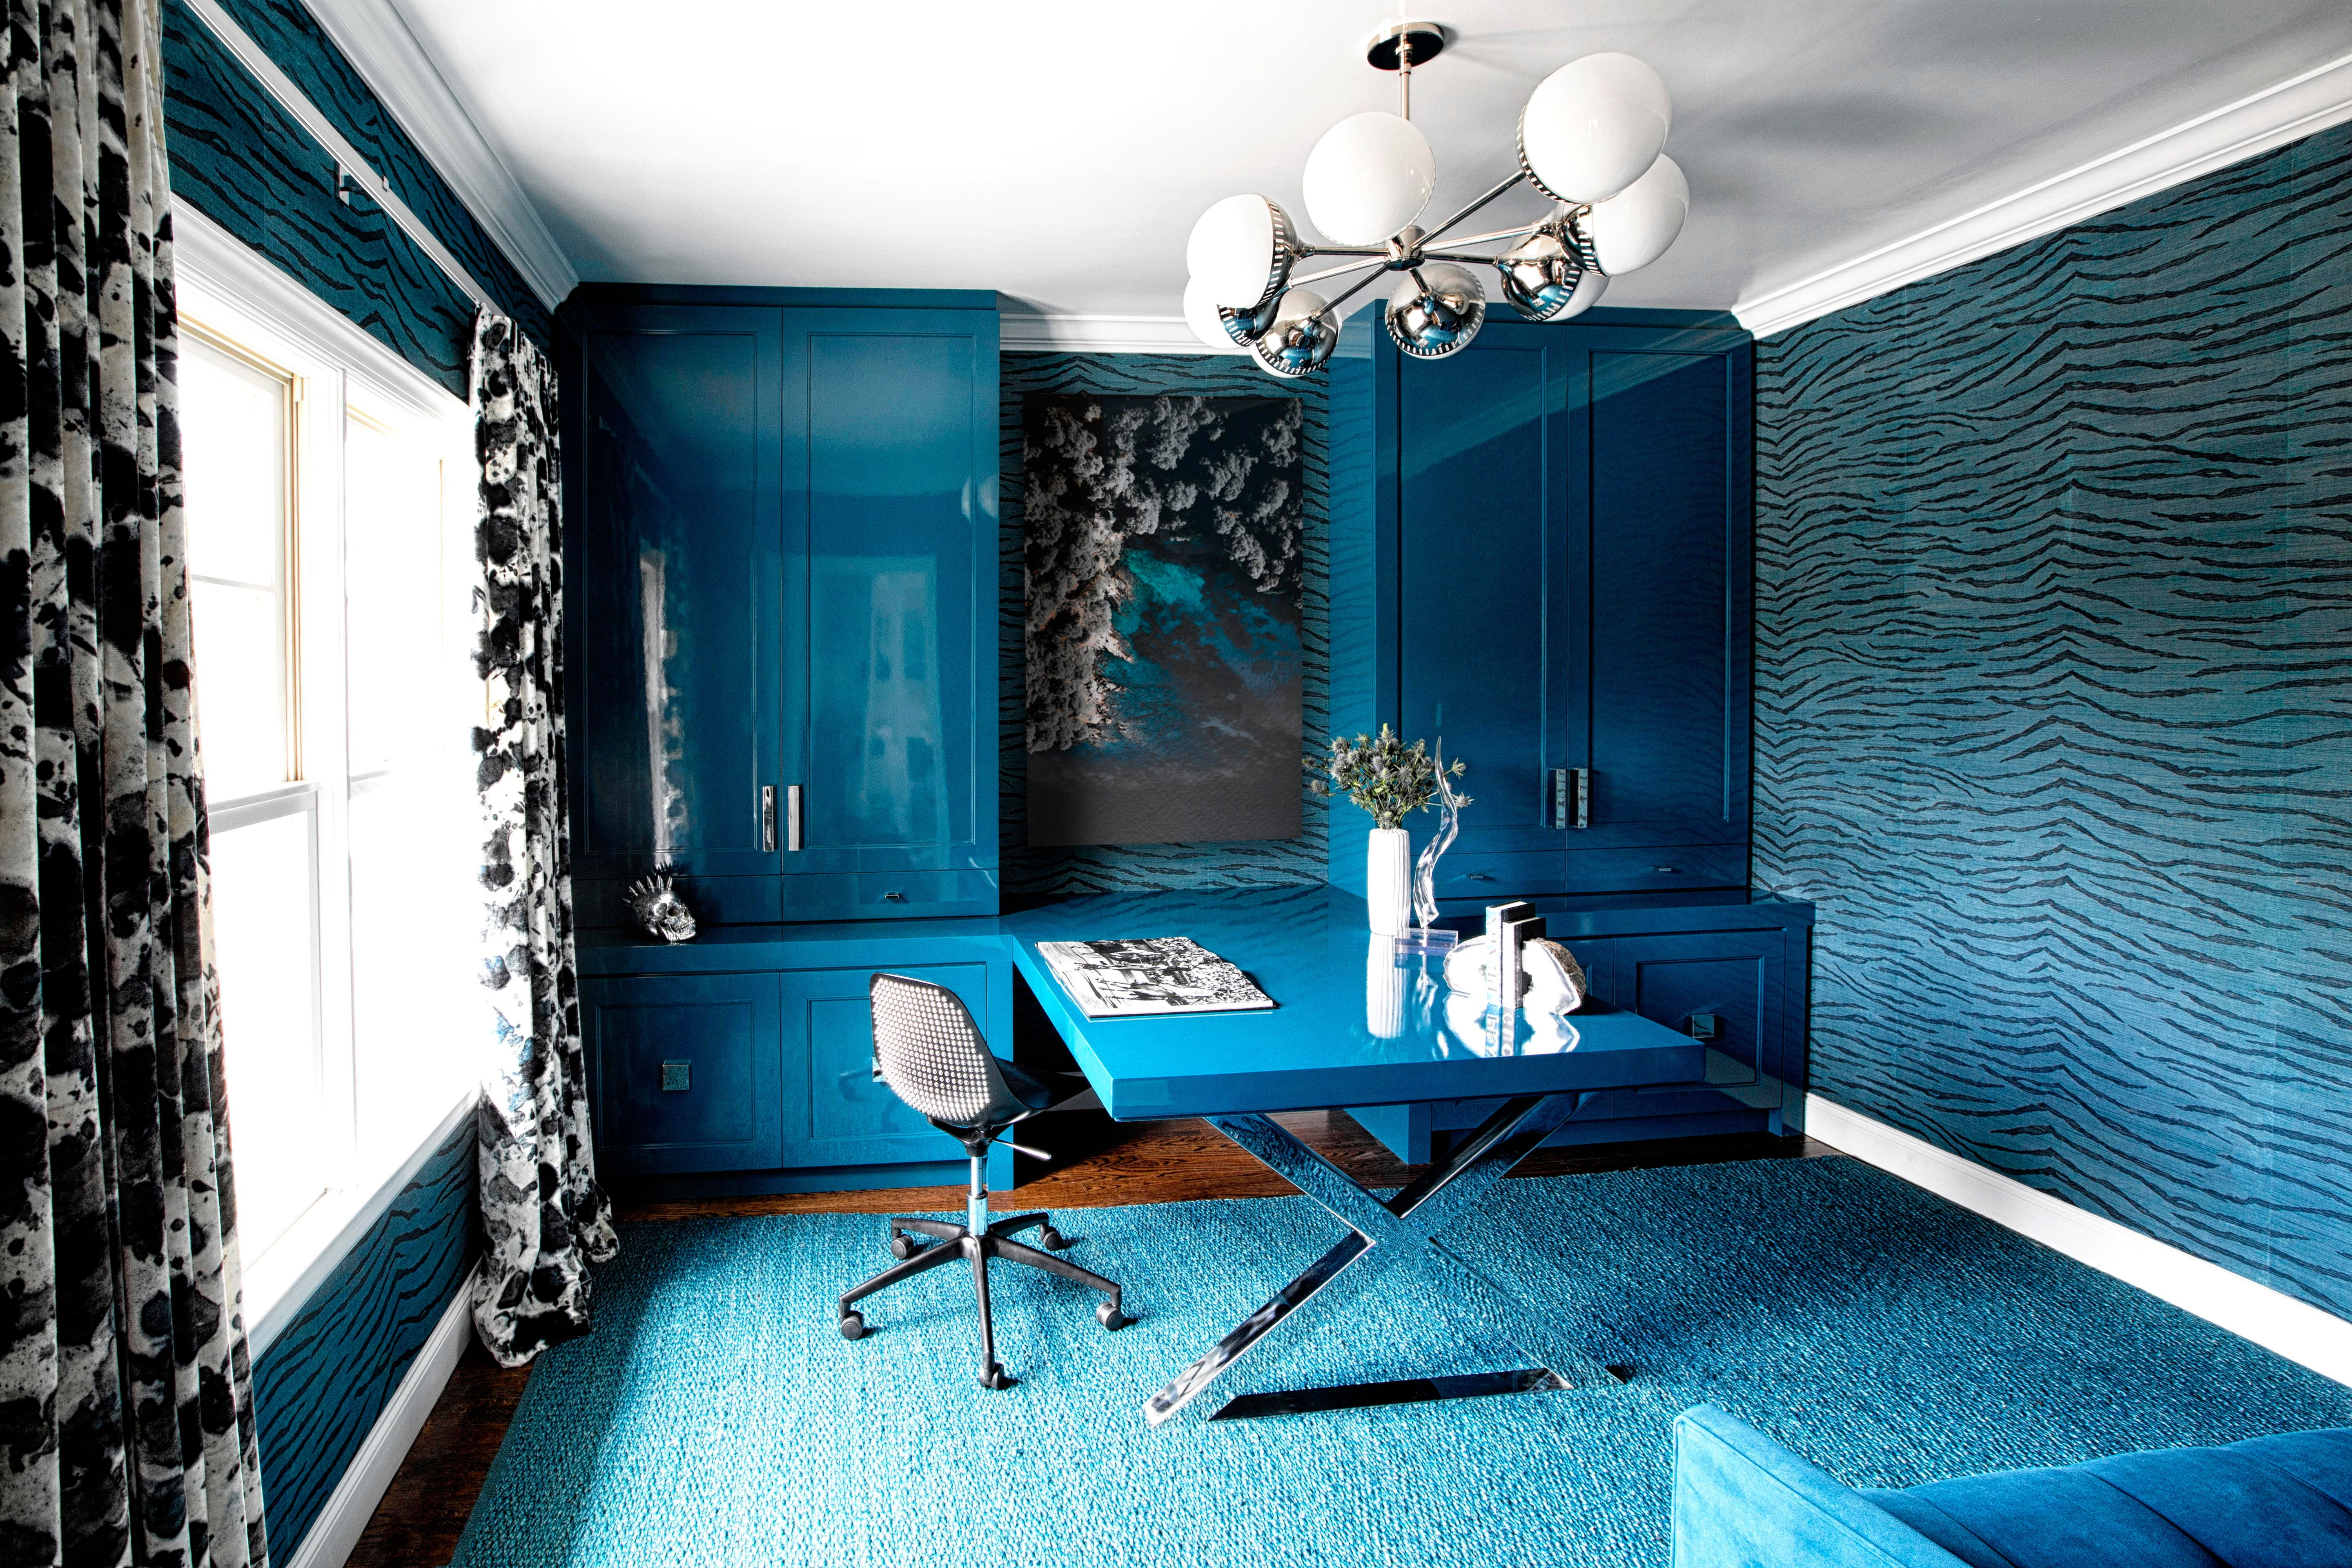 Home Office Featuring Sherwin Williams Color Of The Year: Oceanside.